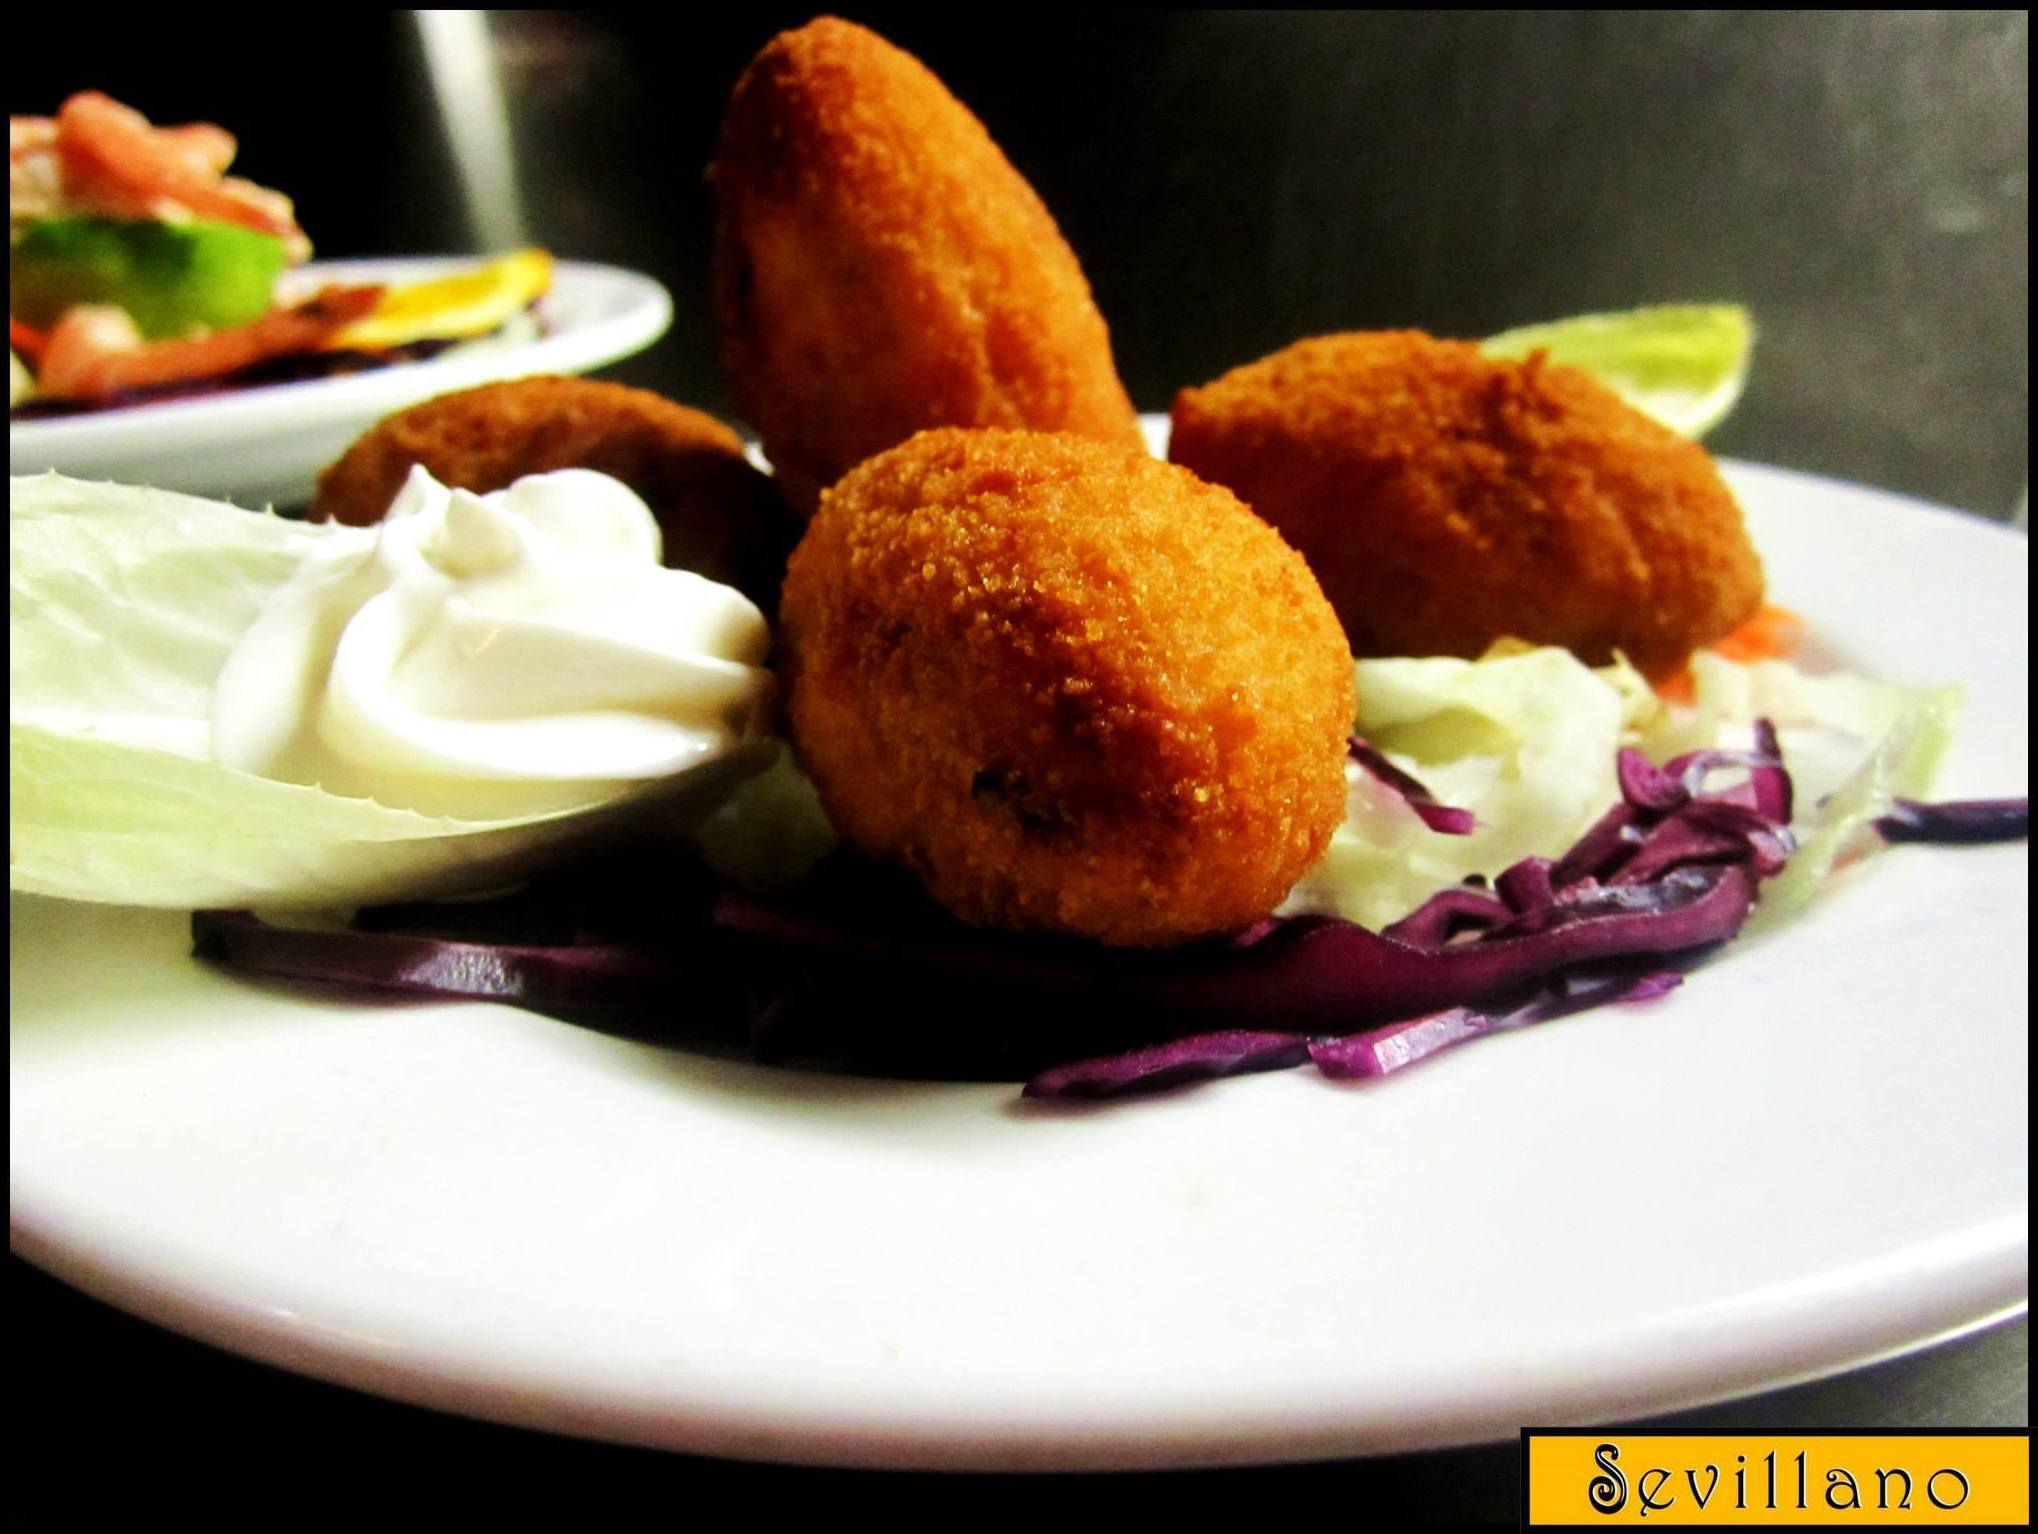 Delicious croquettes filled with ham